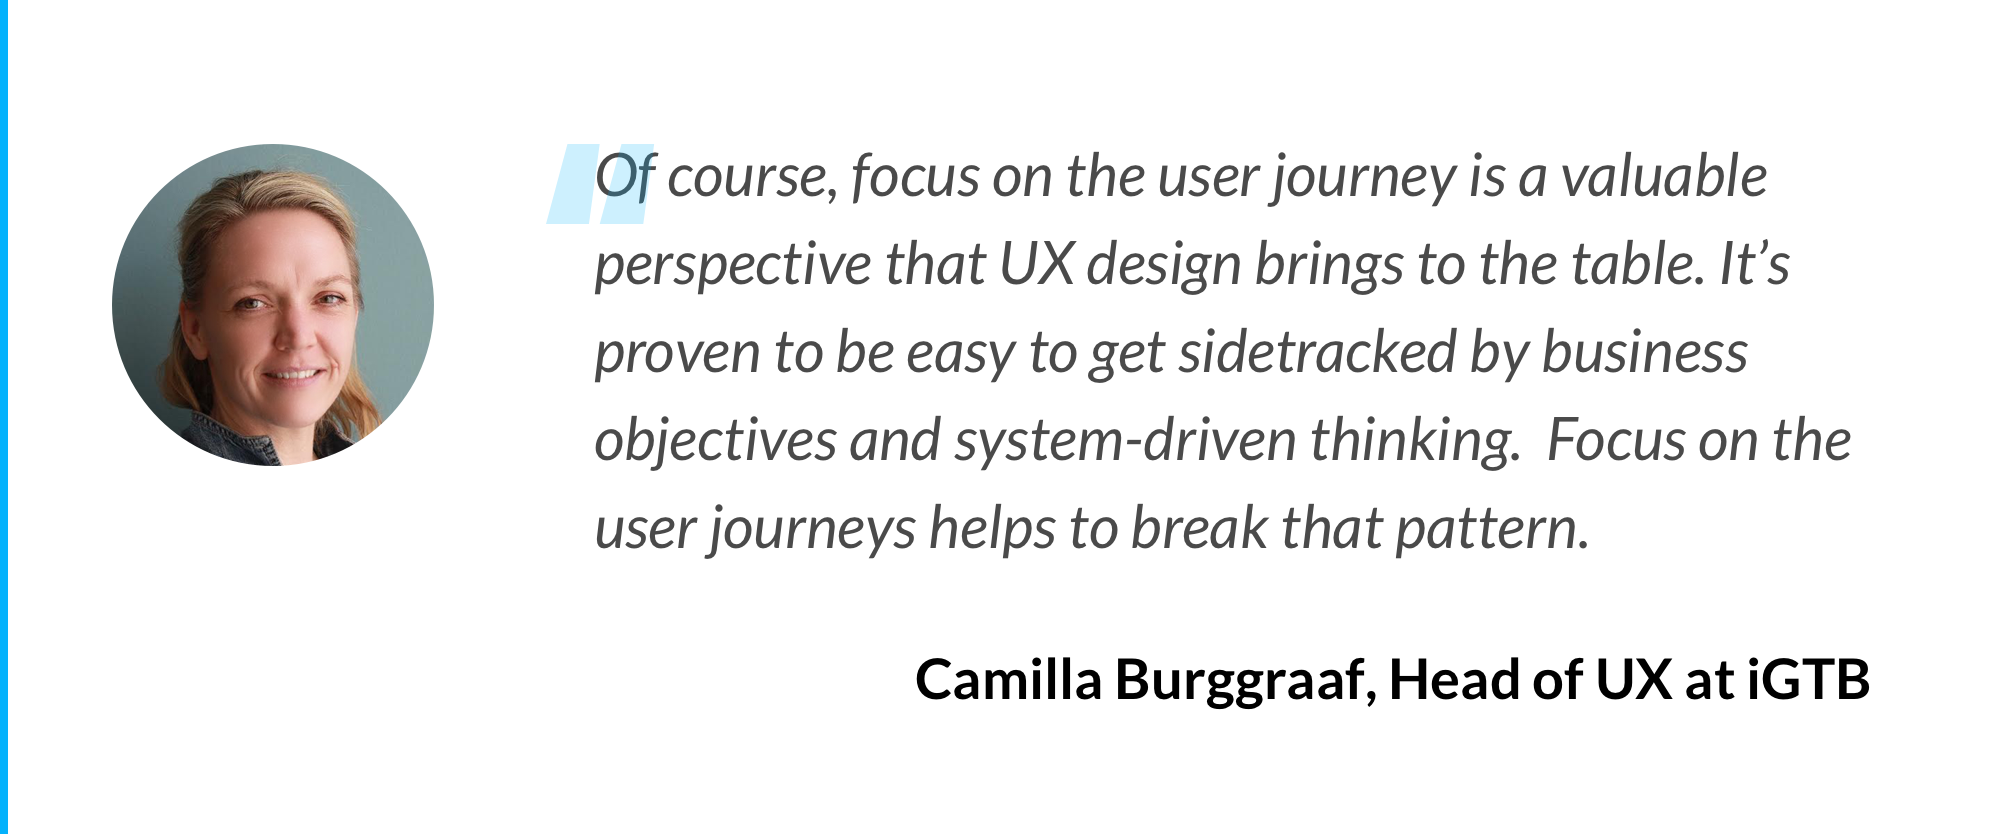 igtb-case-study-quote-camilla-burggraaf-1-at-2x.png